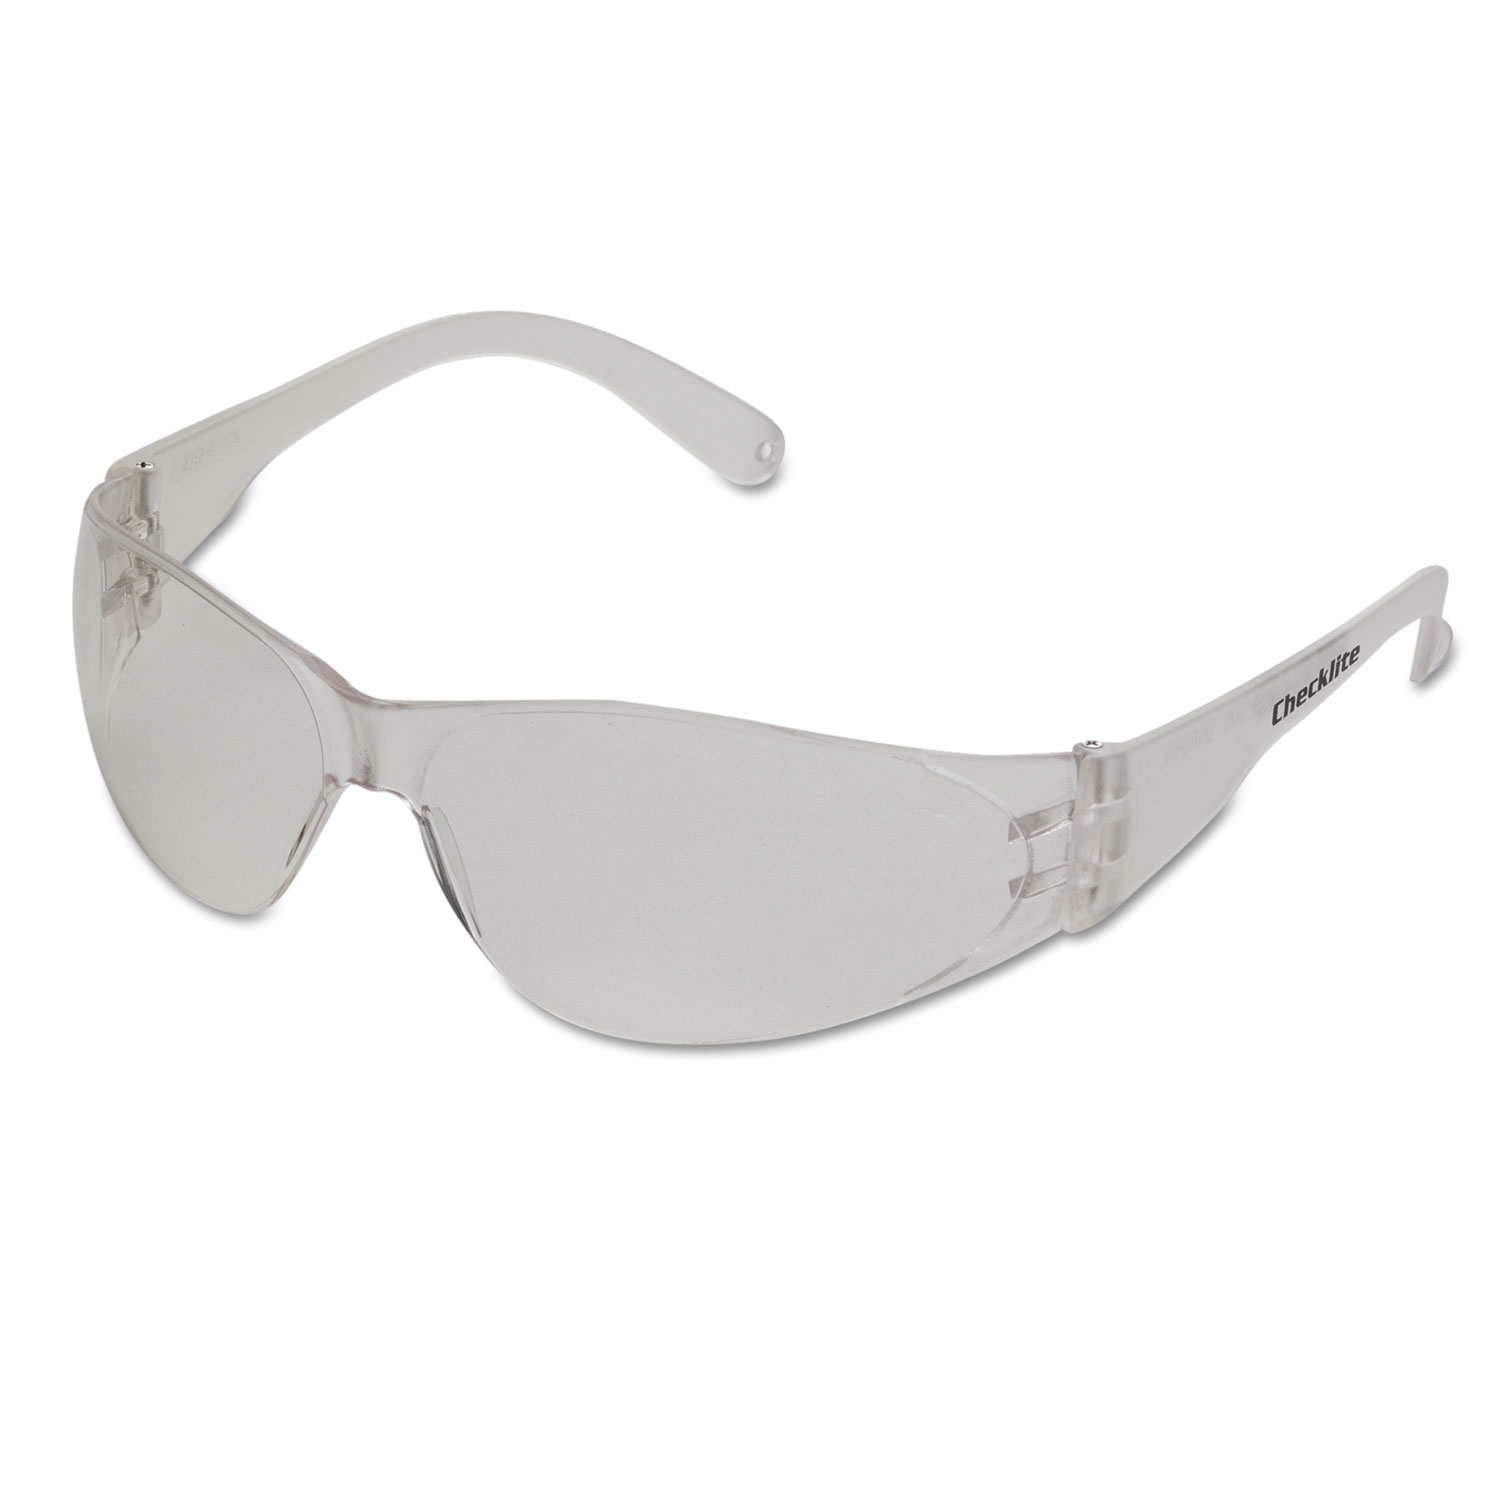 Checklite Safety Glasses, Clear Frame, Anti-Fog Lens